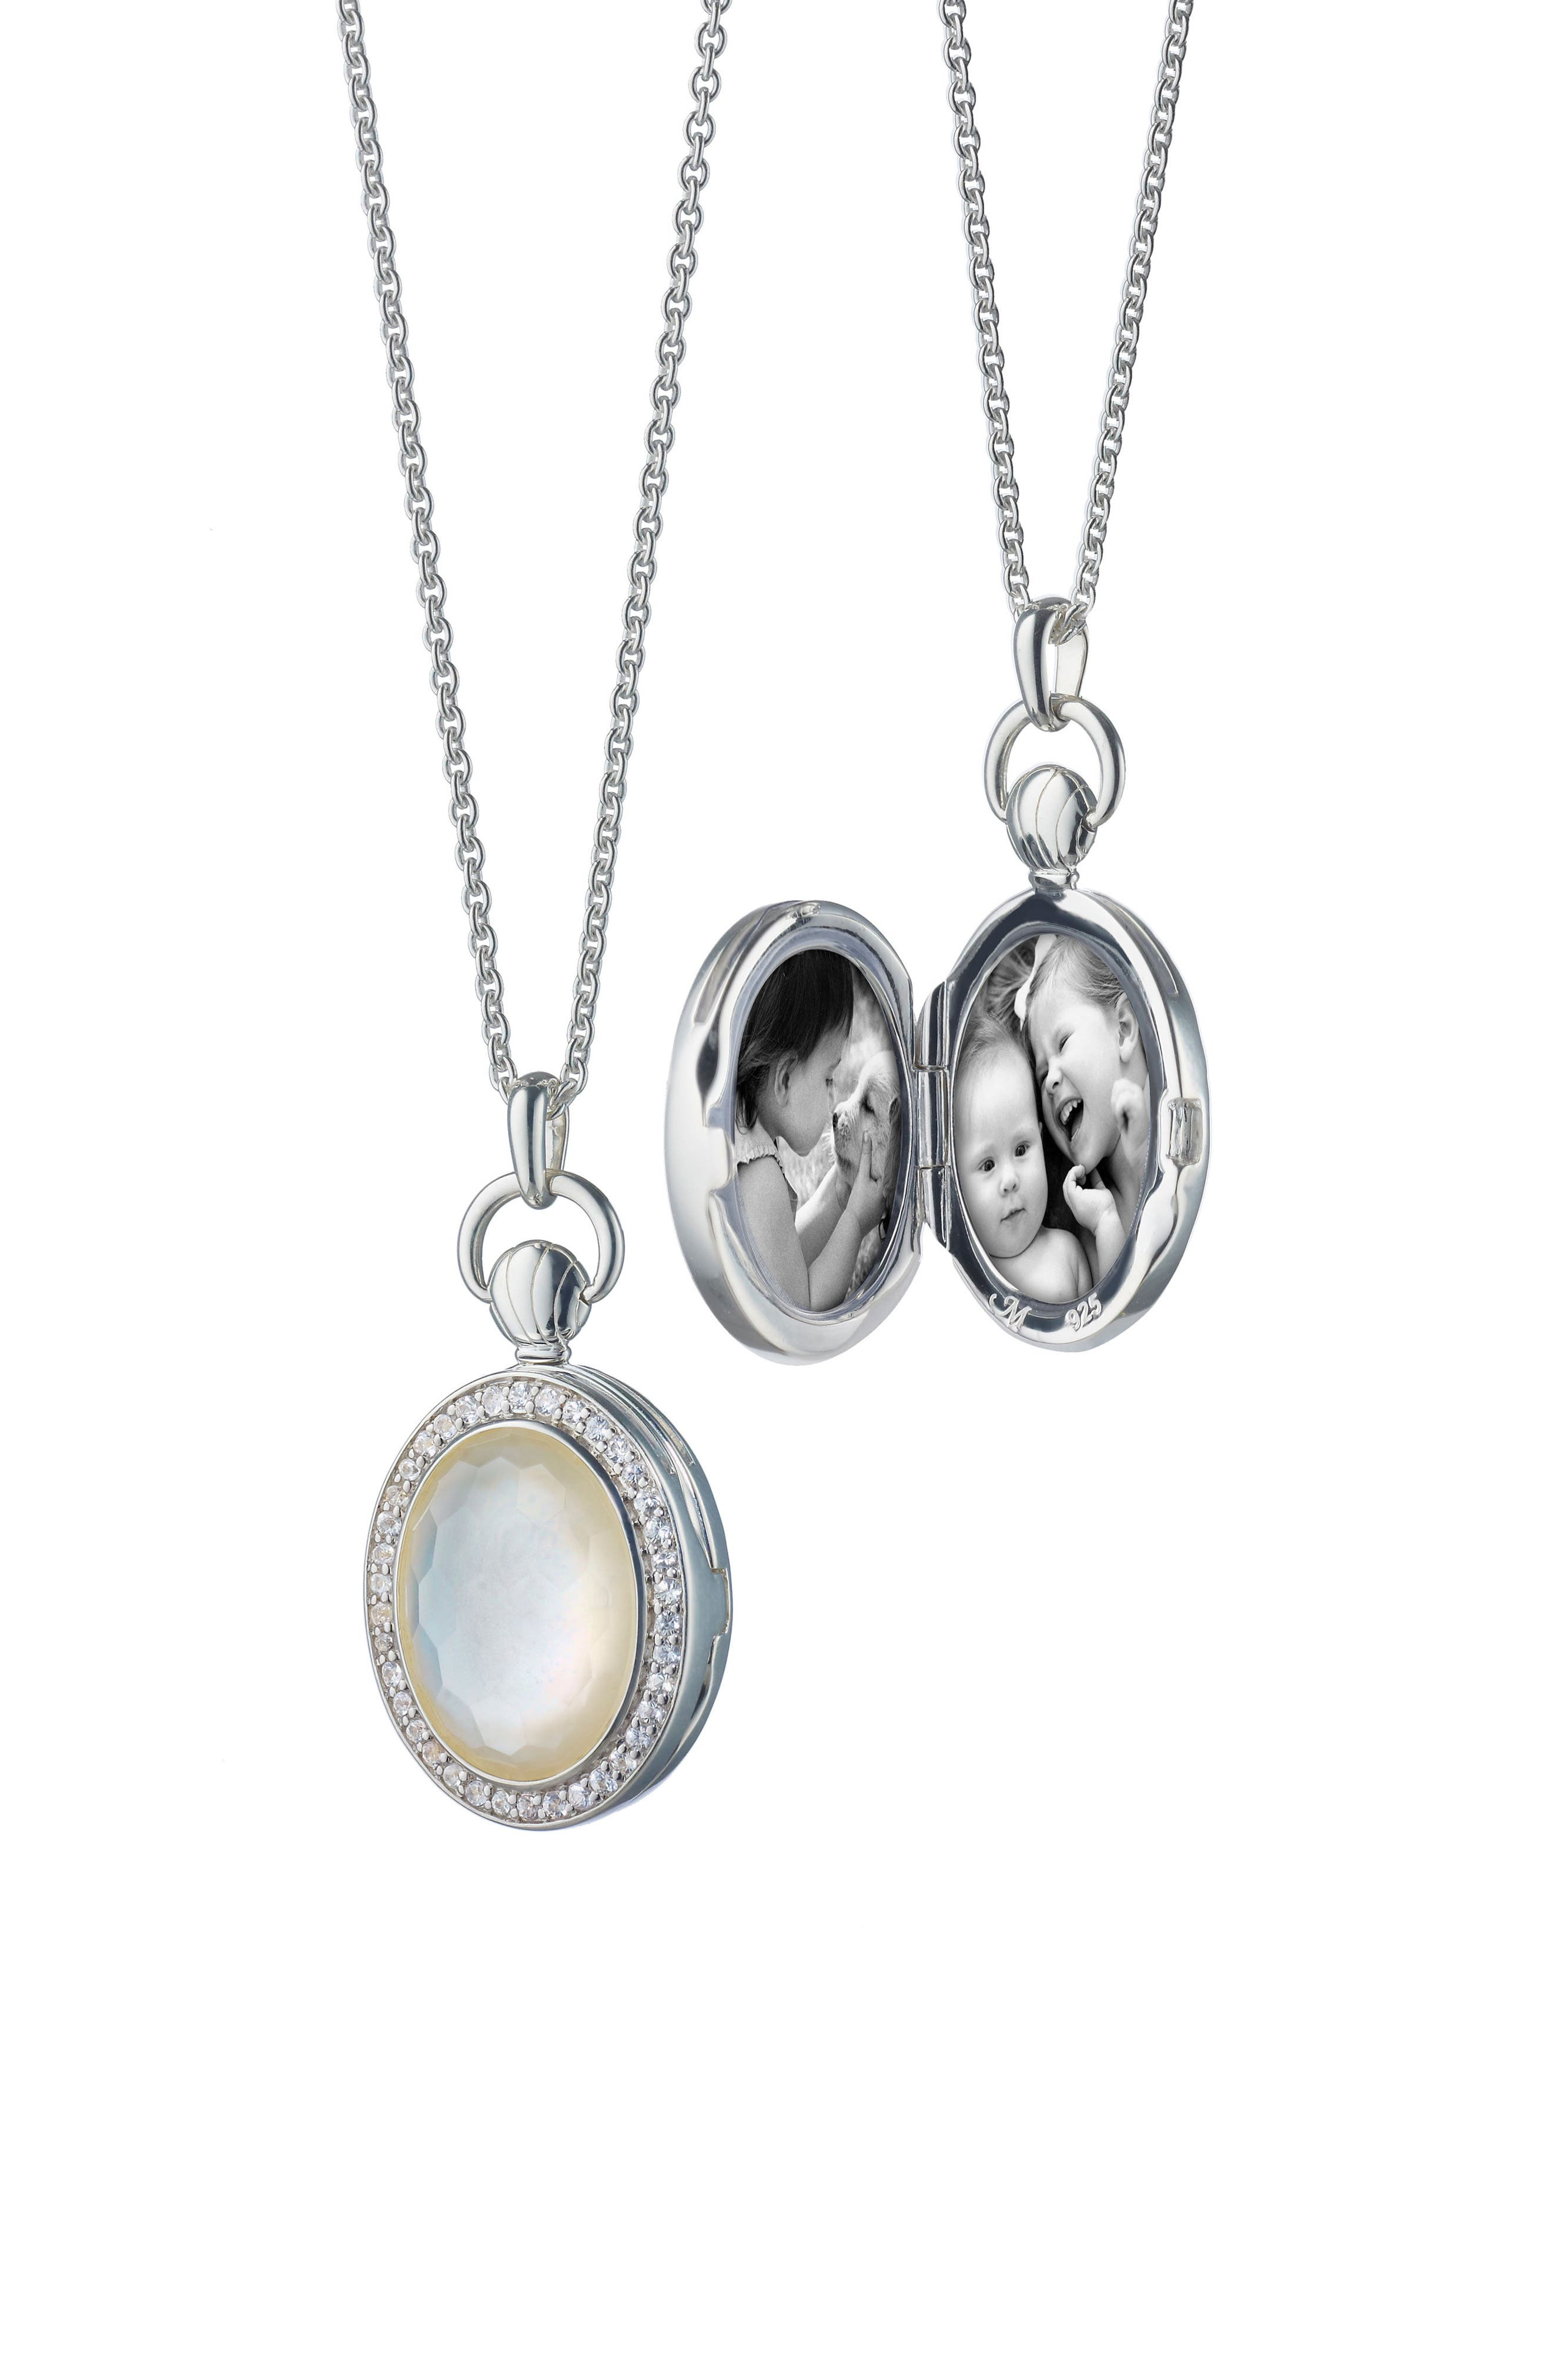 Rock Crystal Oval Locket Necklace,                             Main thumbnail 1, color,                             Sterling Silver